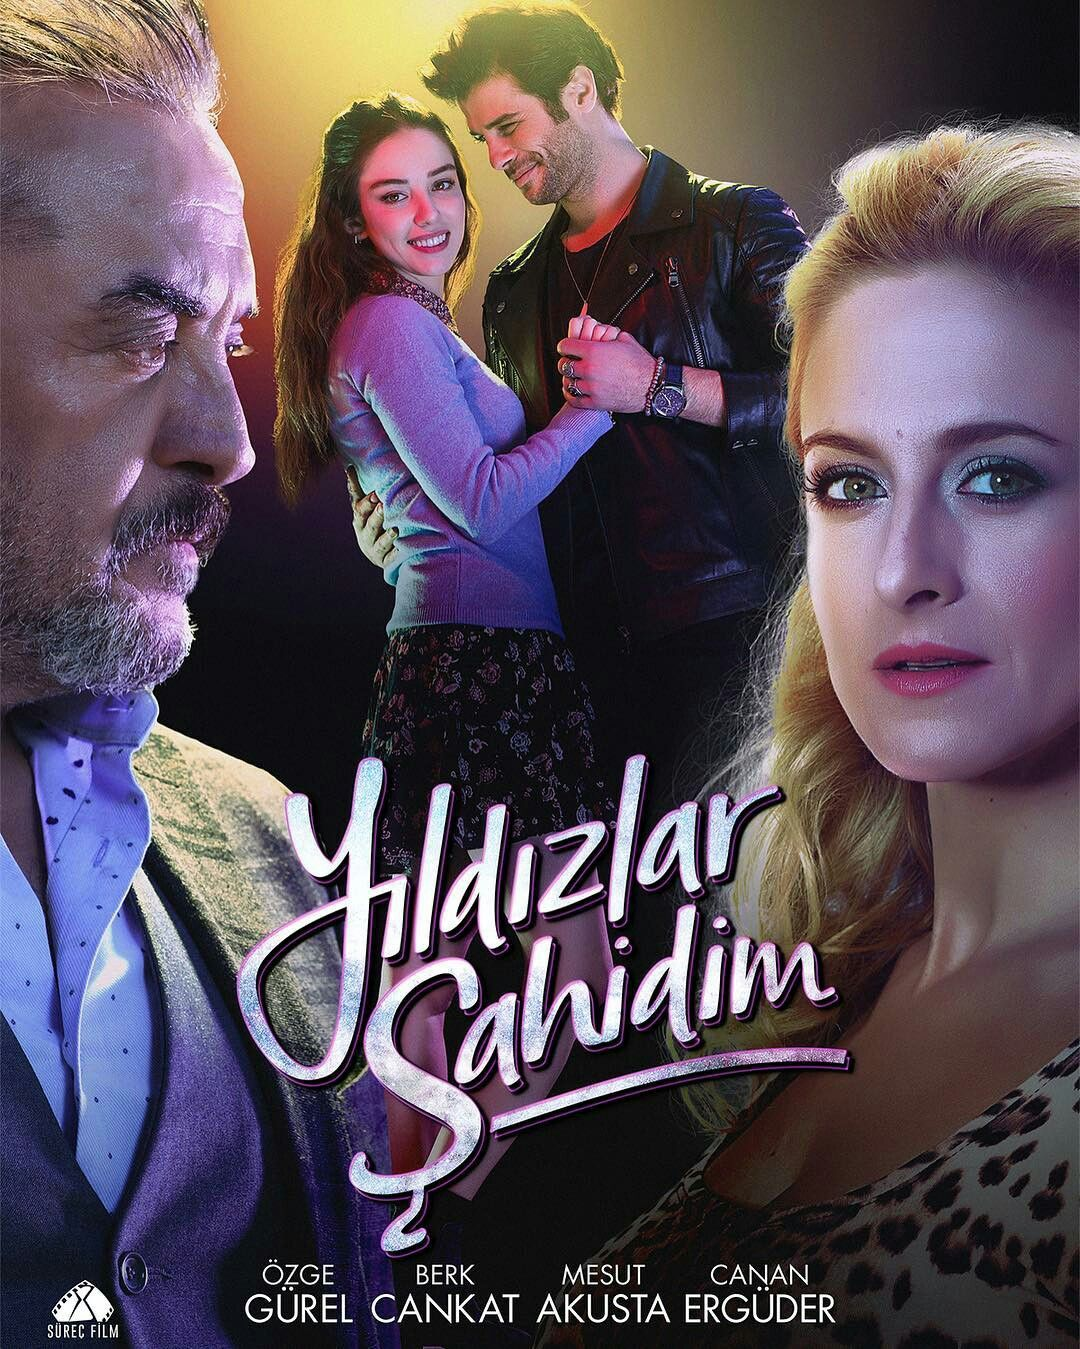 Yildizlar Sahidim With Images Turkish Film Series Movies Tv